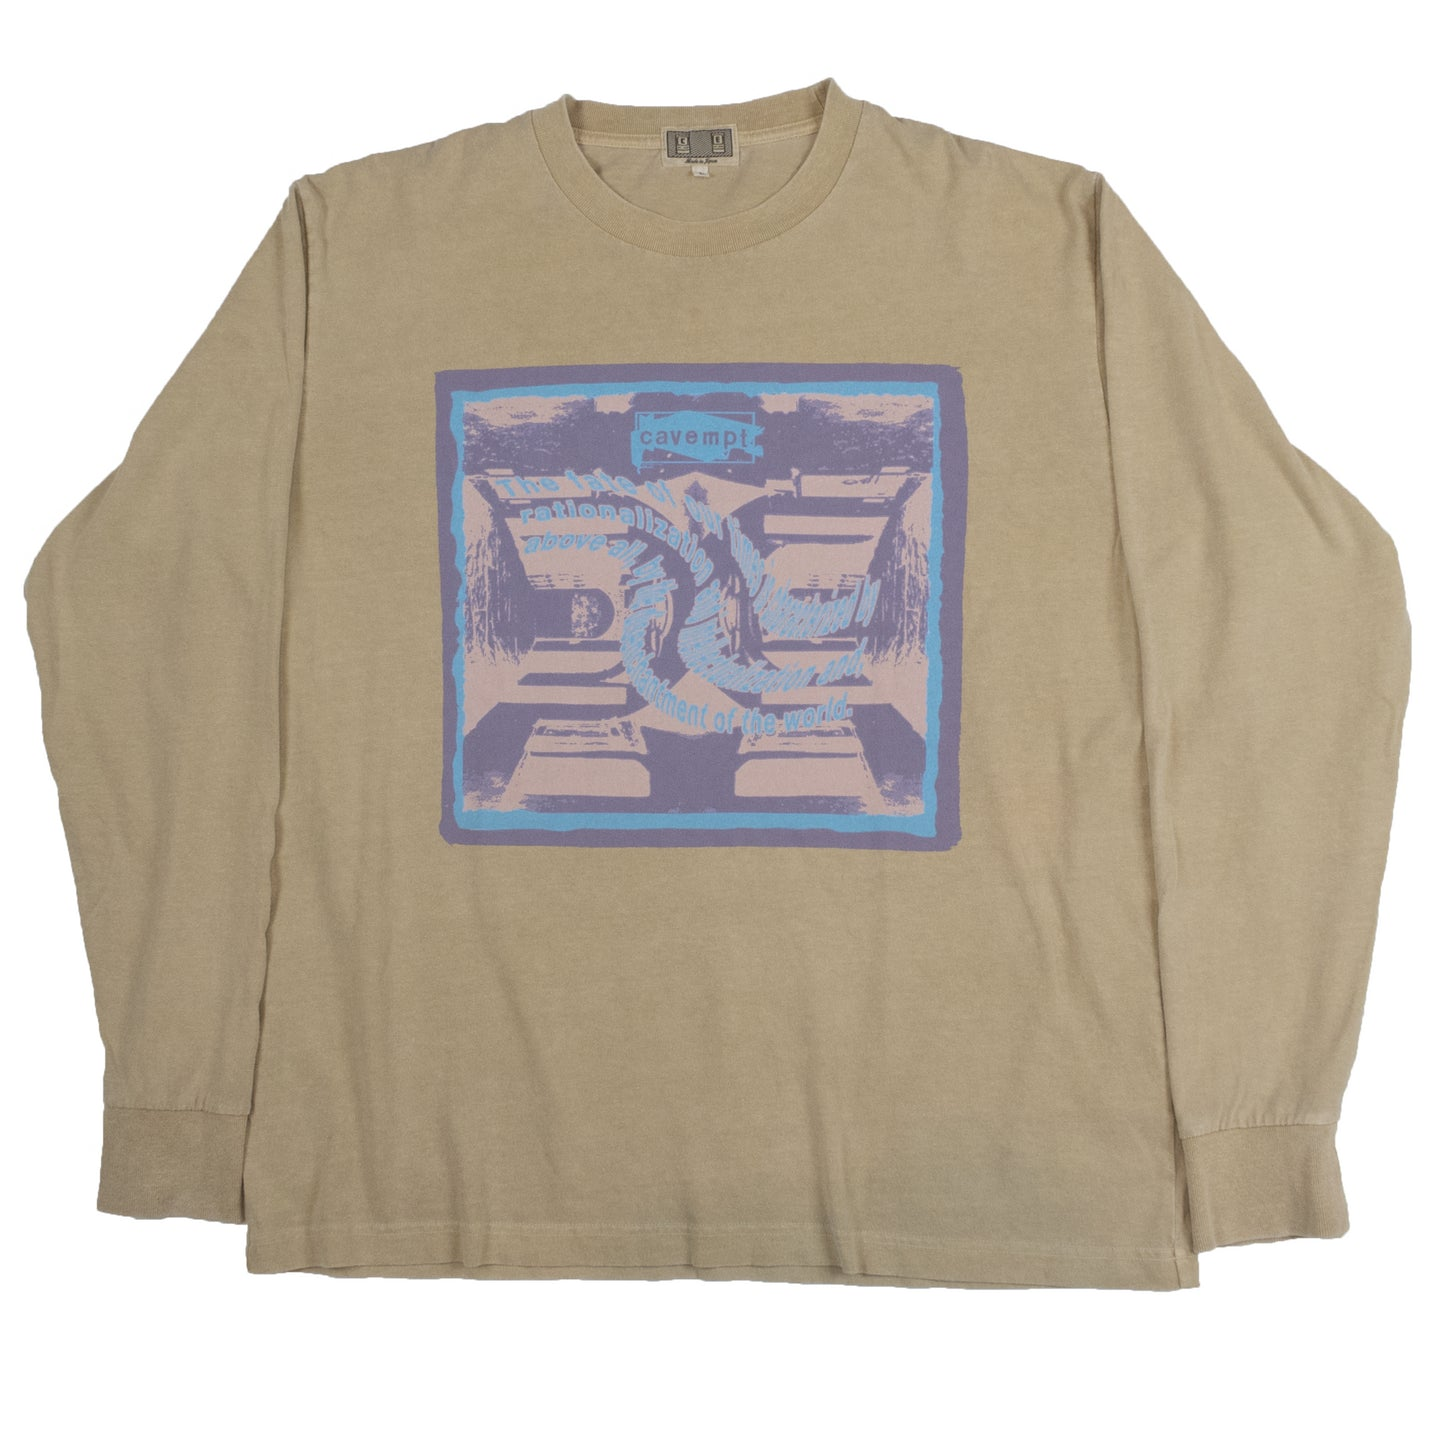 Cav Empt Disenchantment Long Sleeve <Br> Size Large